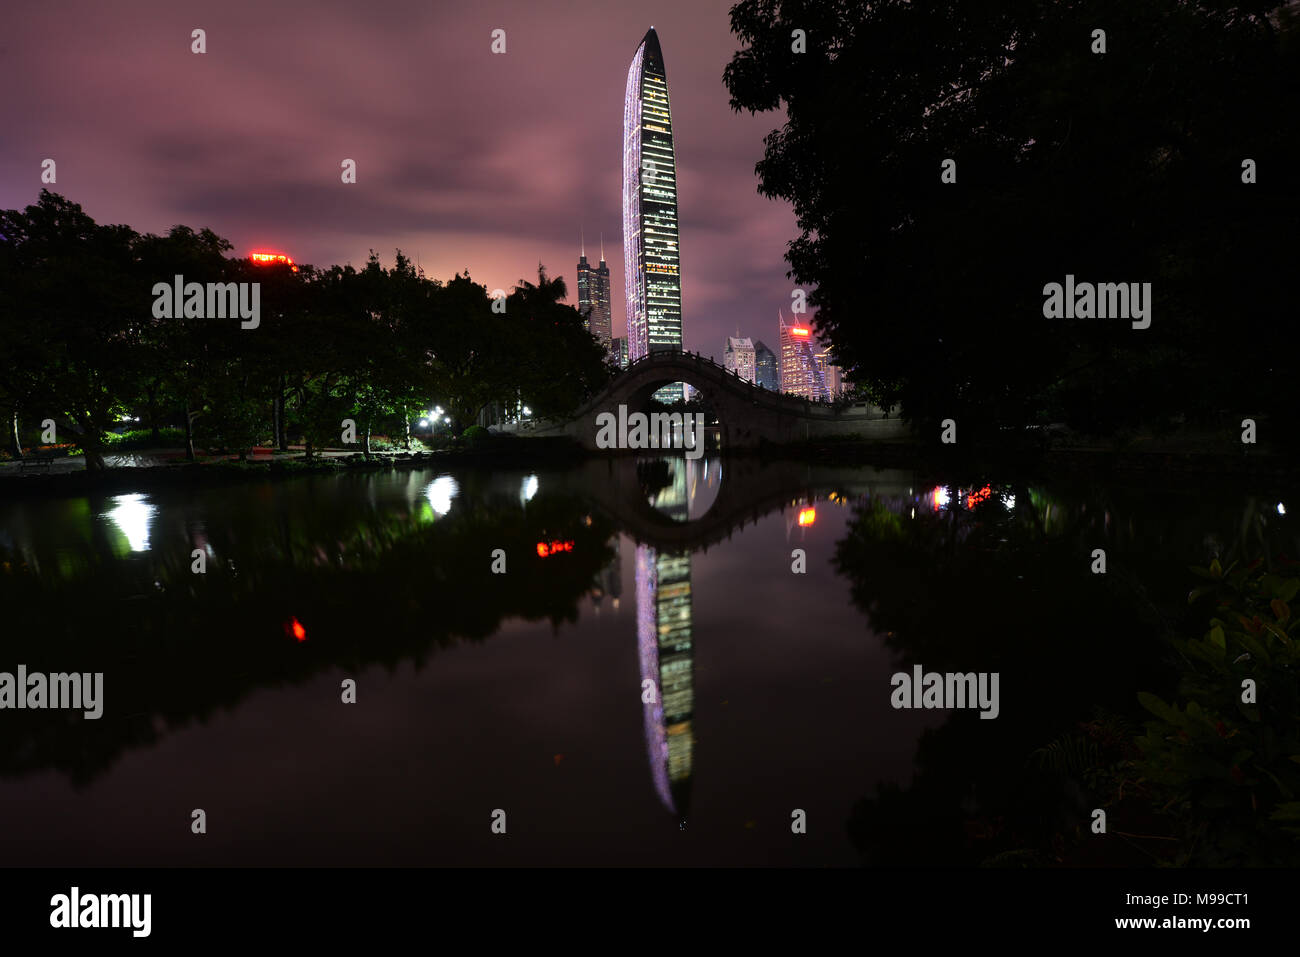 The KK100 skyscraper as seen from Lizhi Park. - Stock Image